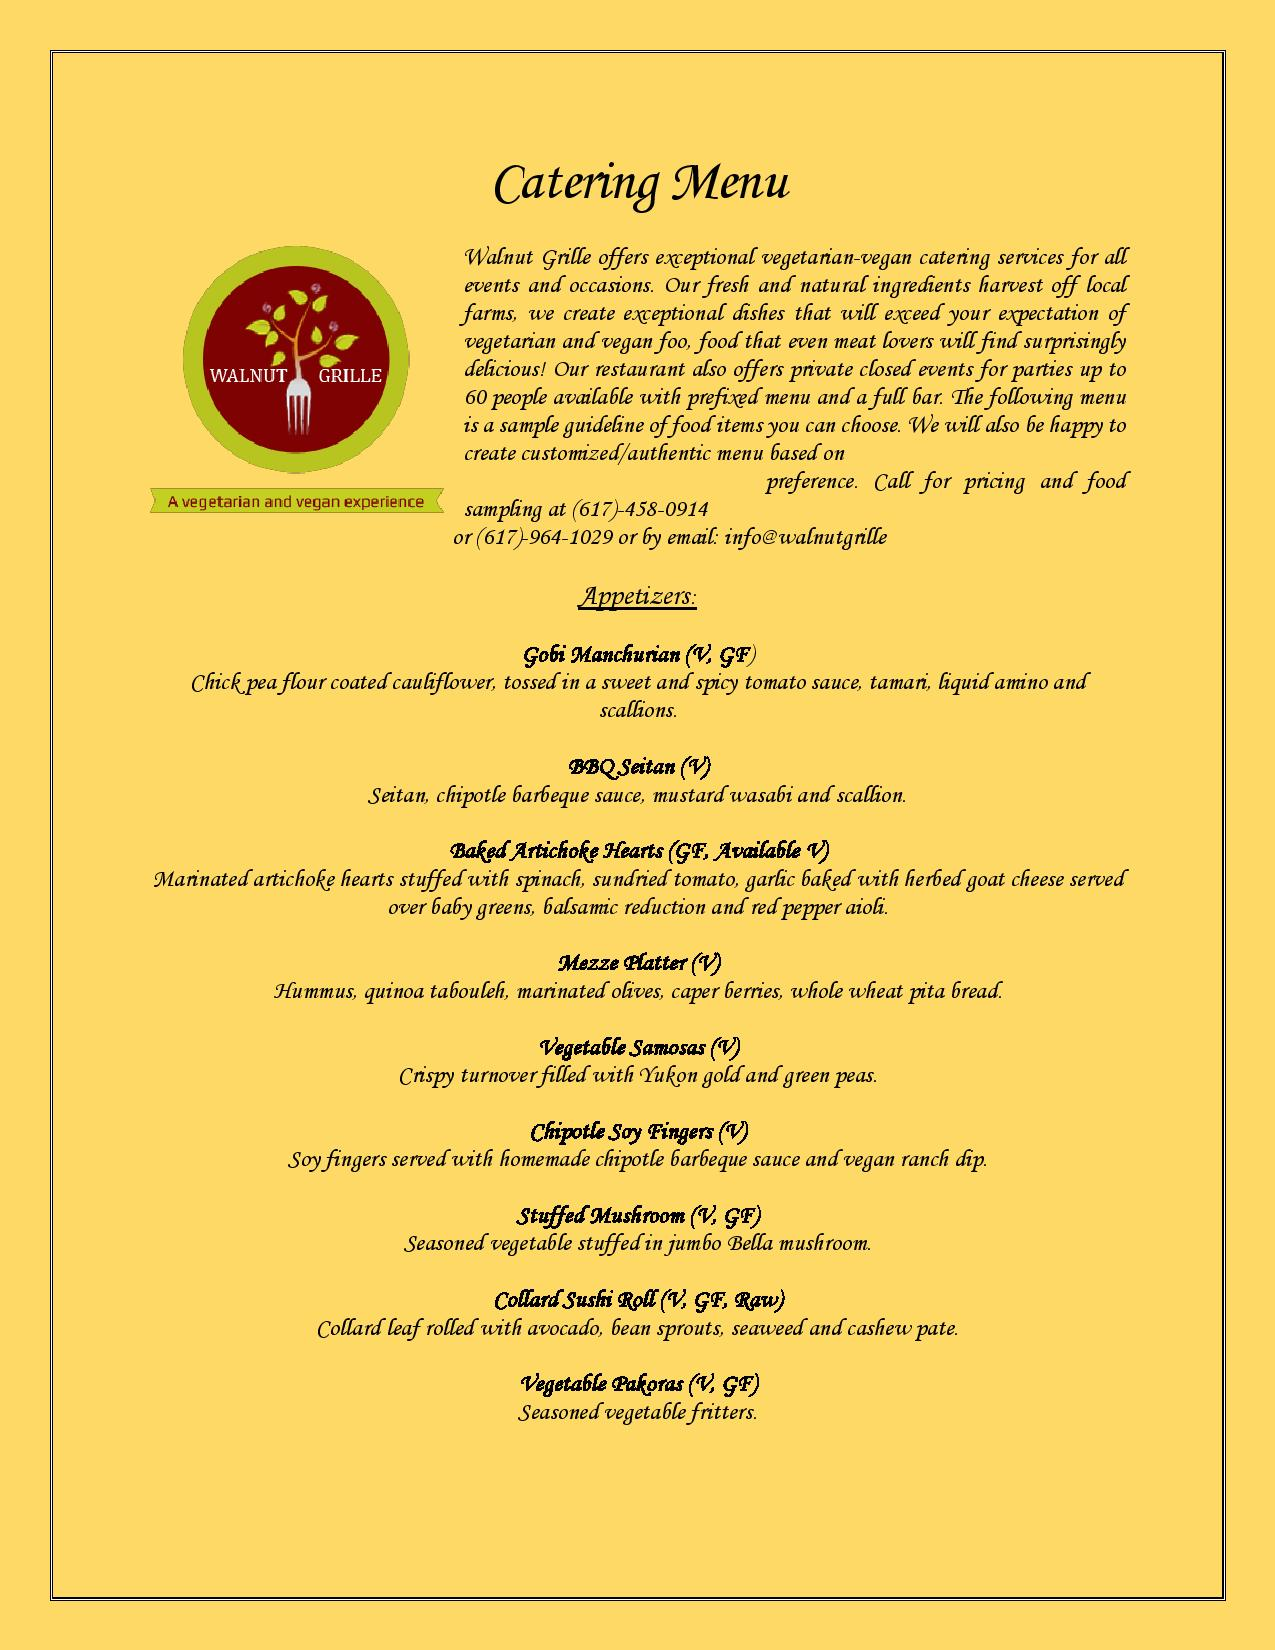 Walnut Grille Catering Menu-page-001